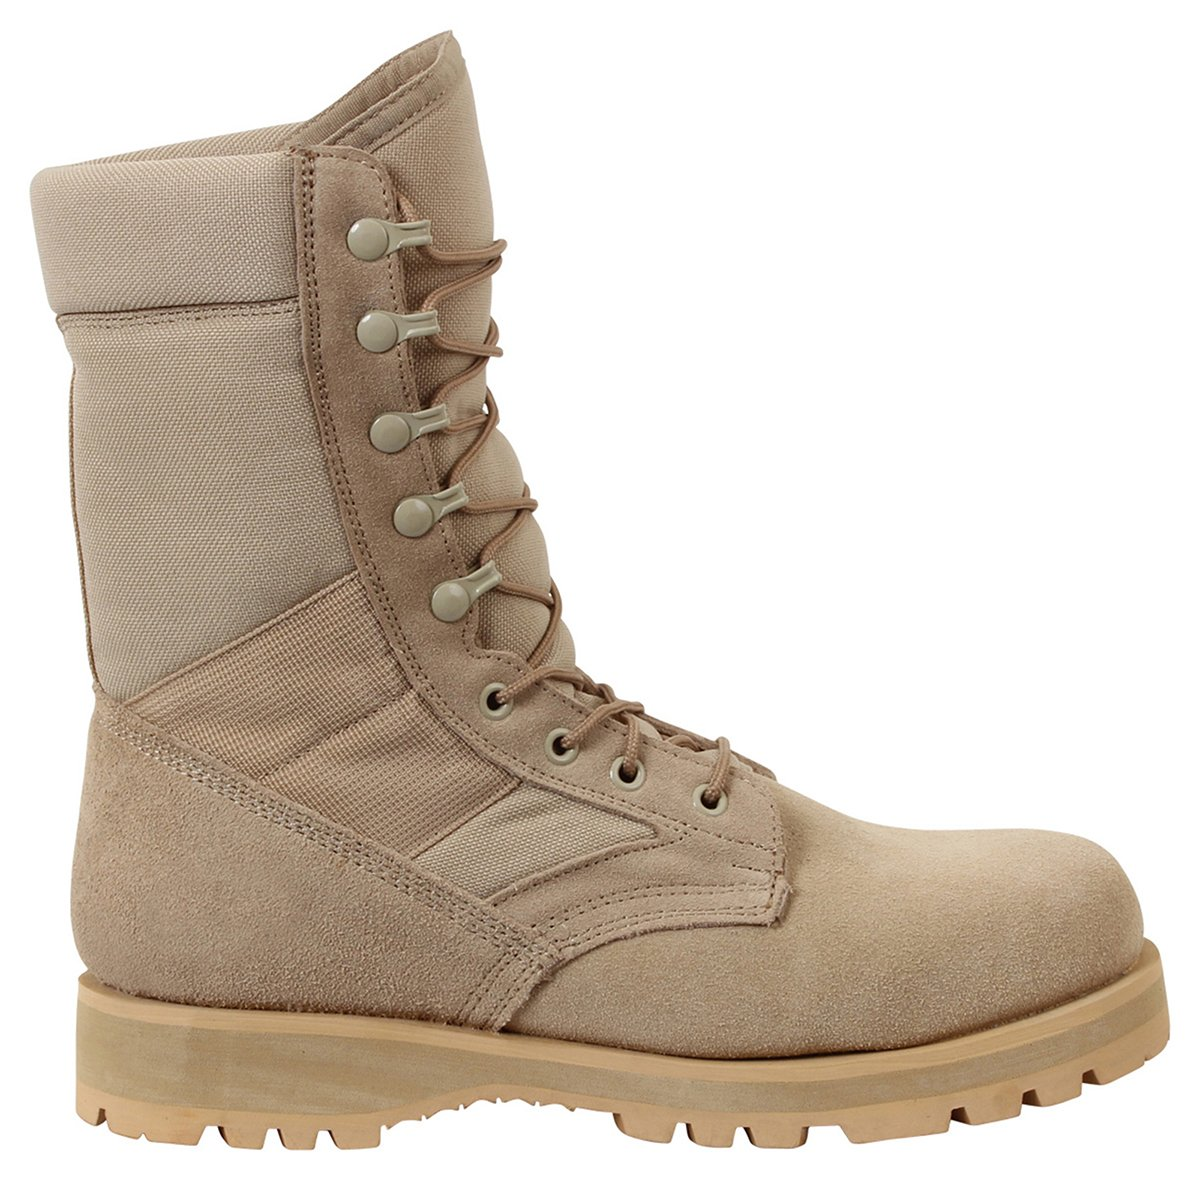 Eastland レディース Plainview B01DUYG0FG 9.5 B(M) US|タン タン 9.5 B(M) US